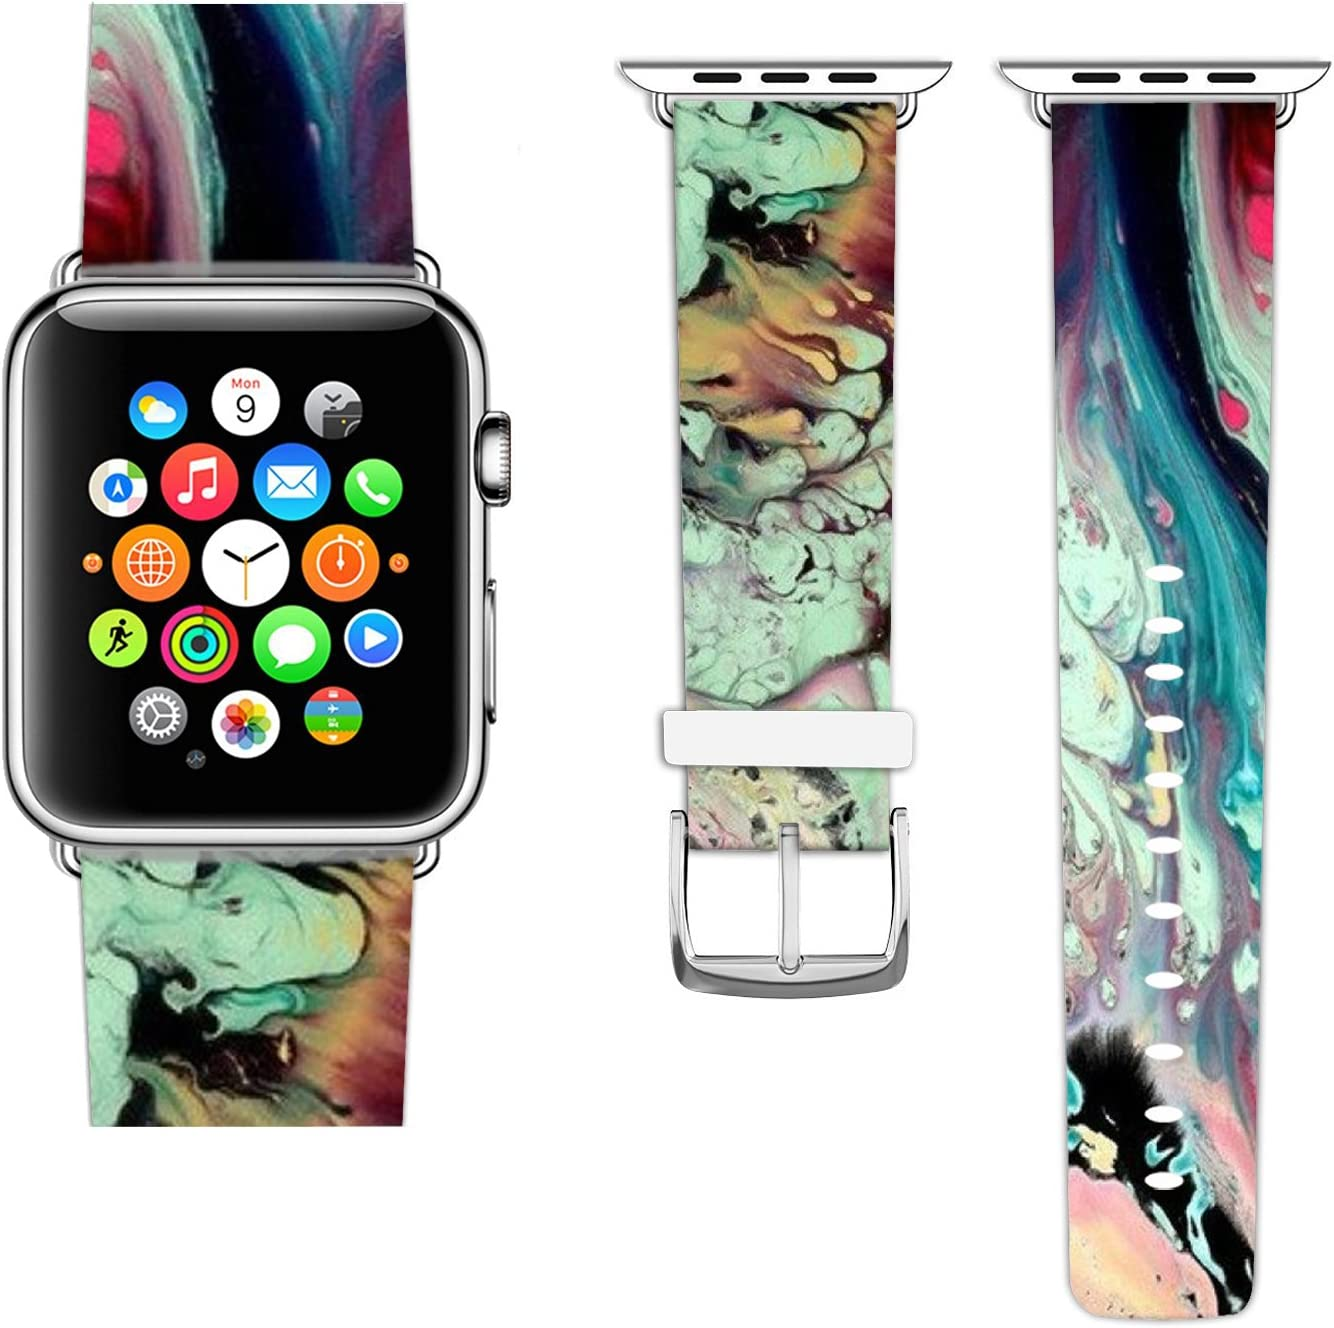 Ecute Compatible with Apple Watch Band 38mm 40mm, Soft Leather Band Strap Compatible with iWatch Series 6/5/4/3/2/1 - Flowing Marble